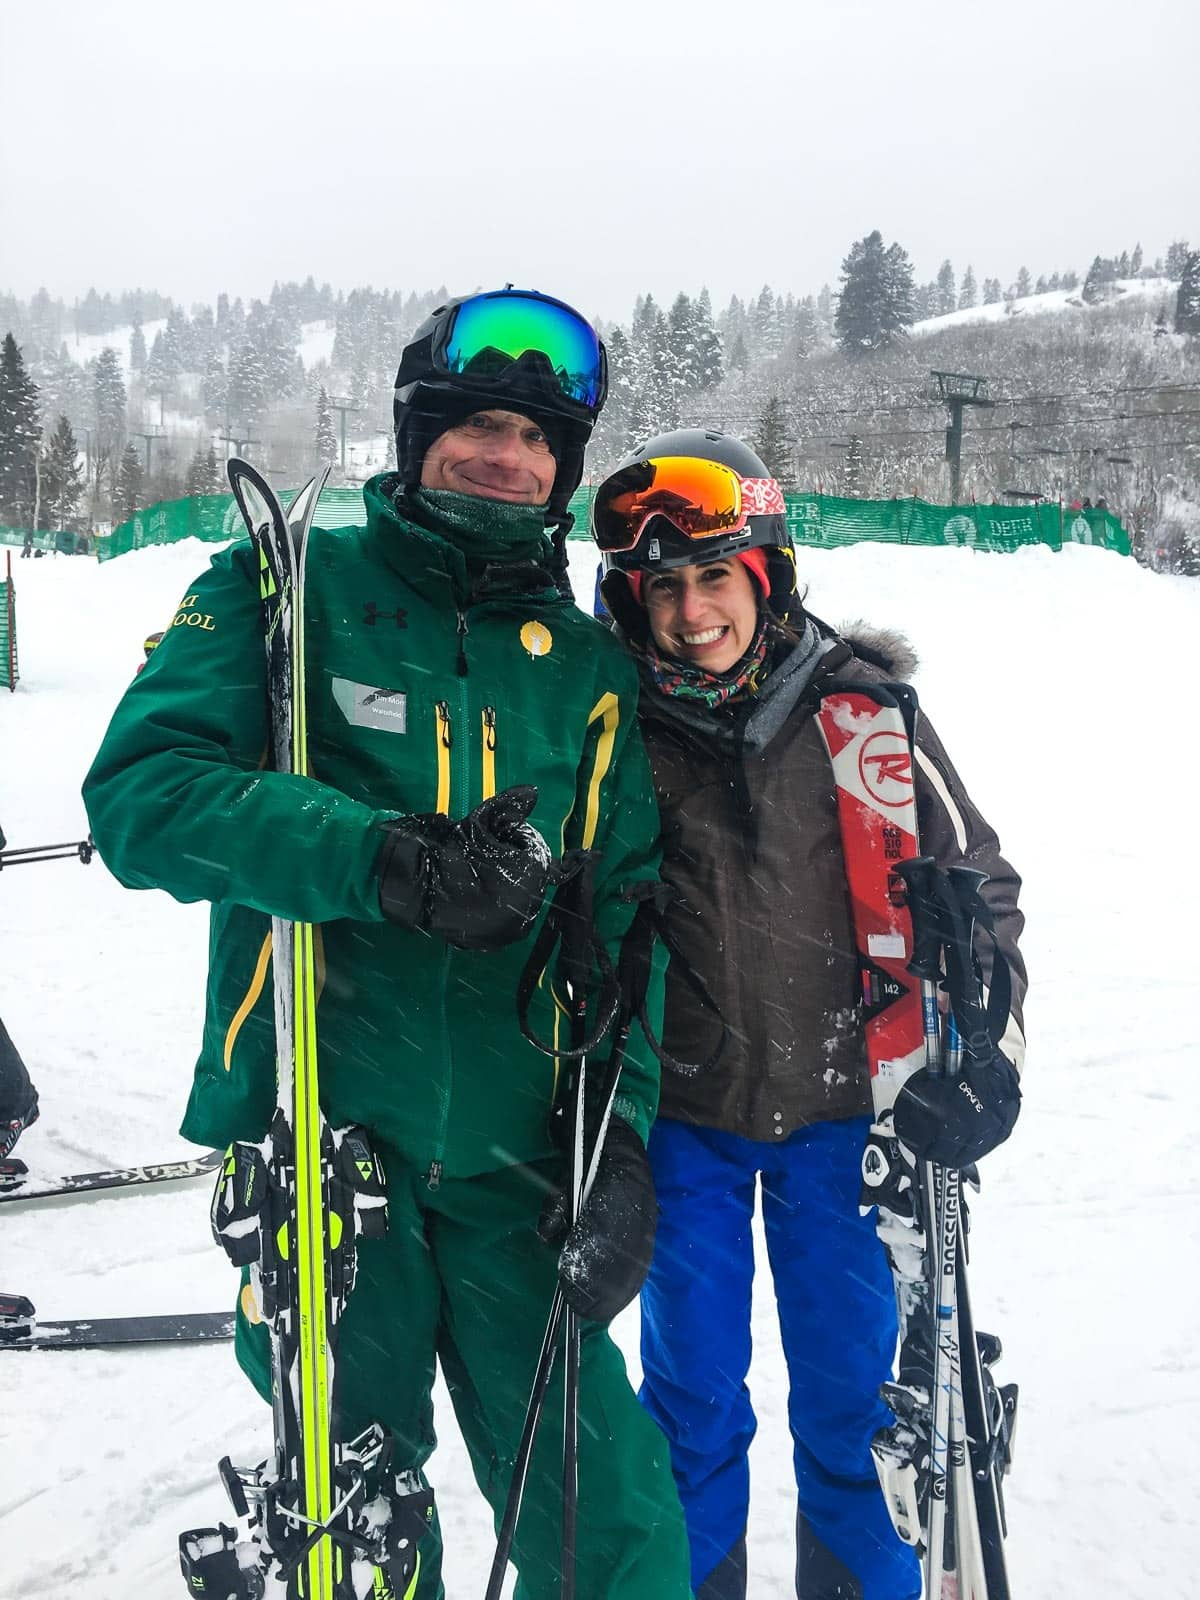 Erin and Ben Clarke in snow gear holding skiis